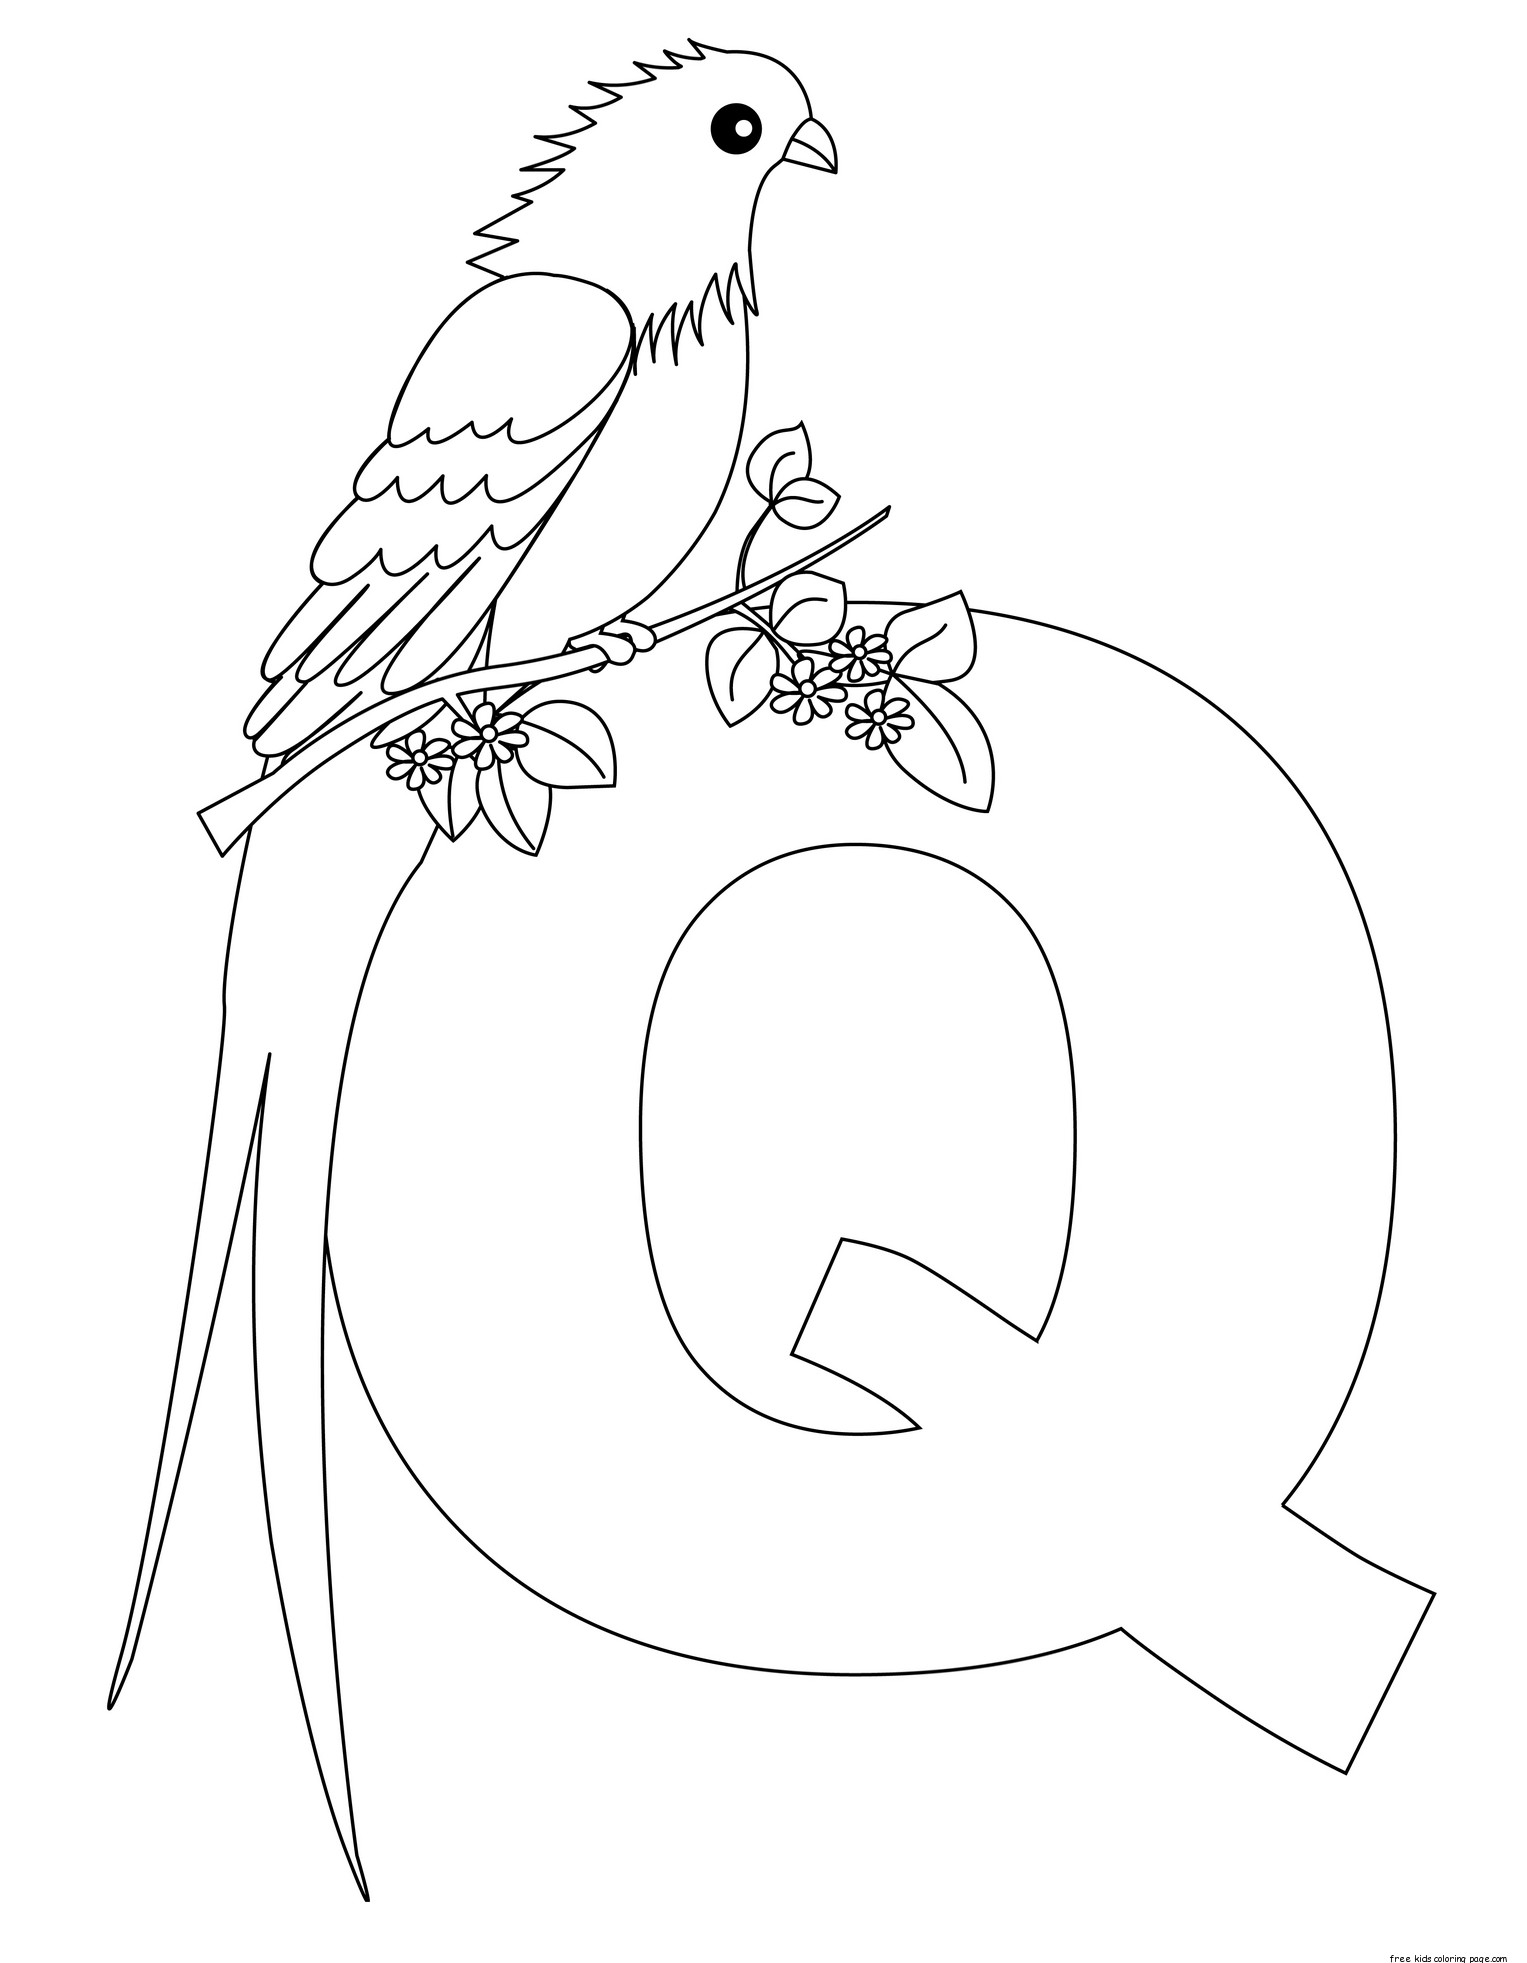 Printable Alphabet Letters For Preschoolers Letter Qfree Printable Coloring Pages For Kids